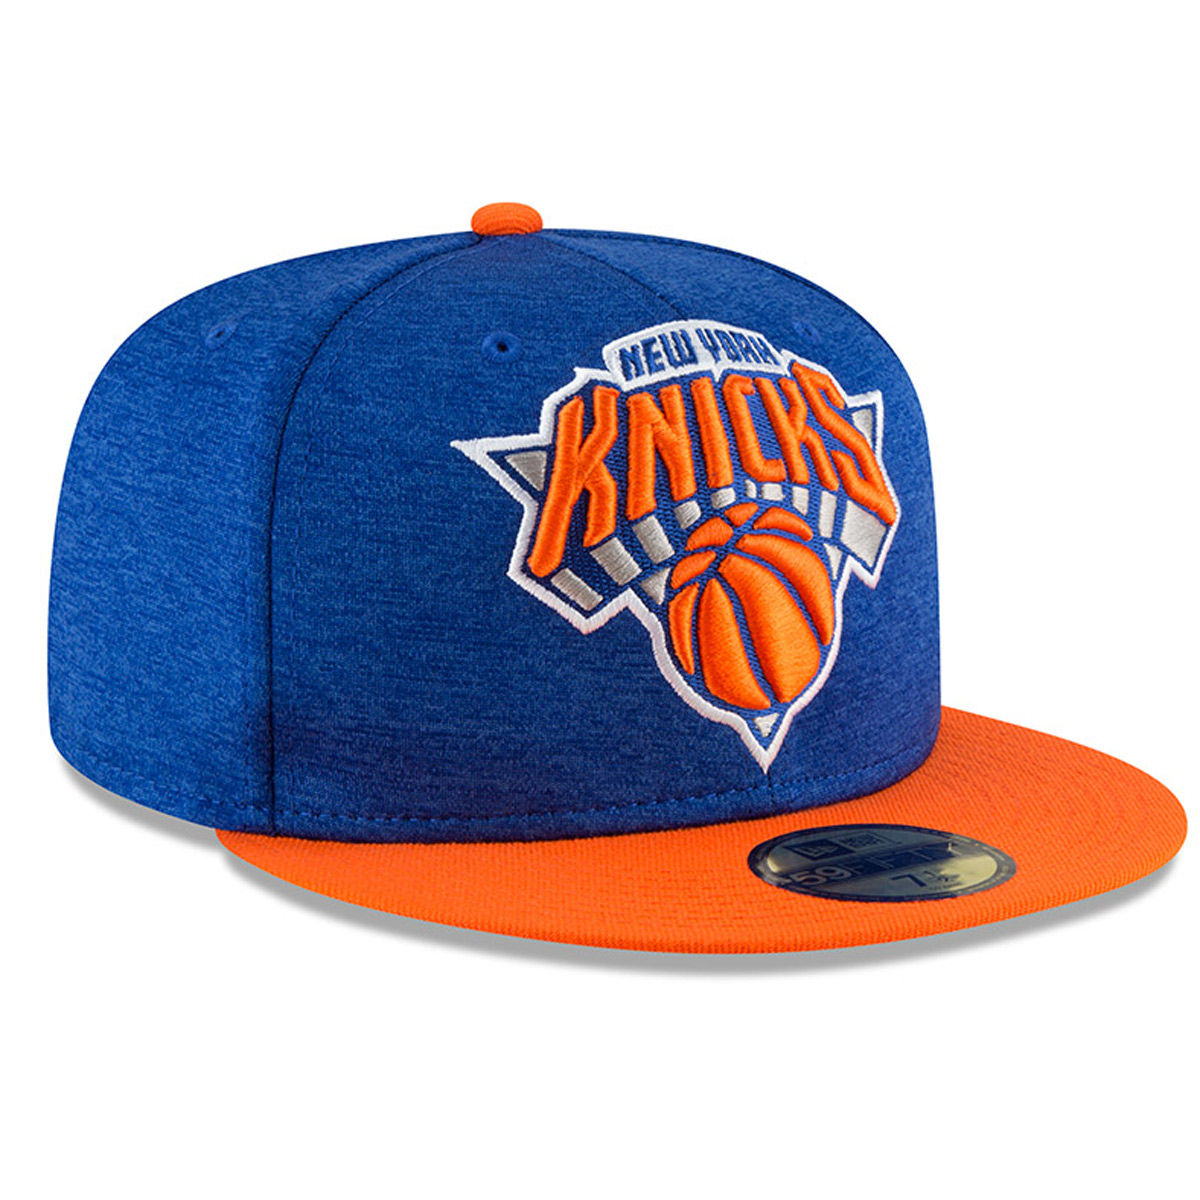 New York Knicks Adult 59FIFTY Fitted Hat